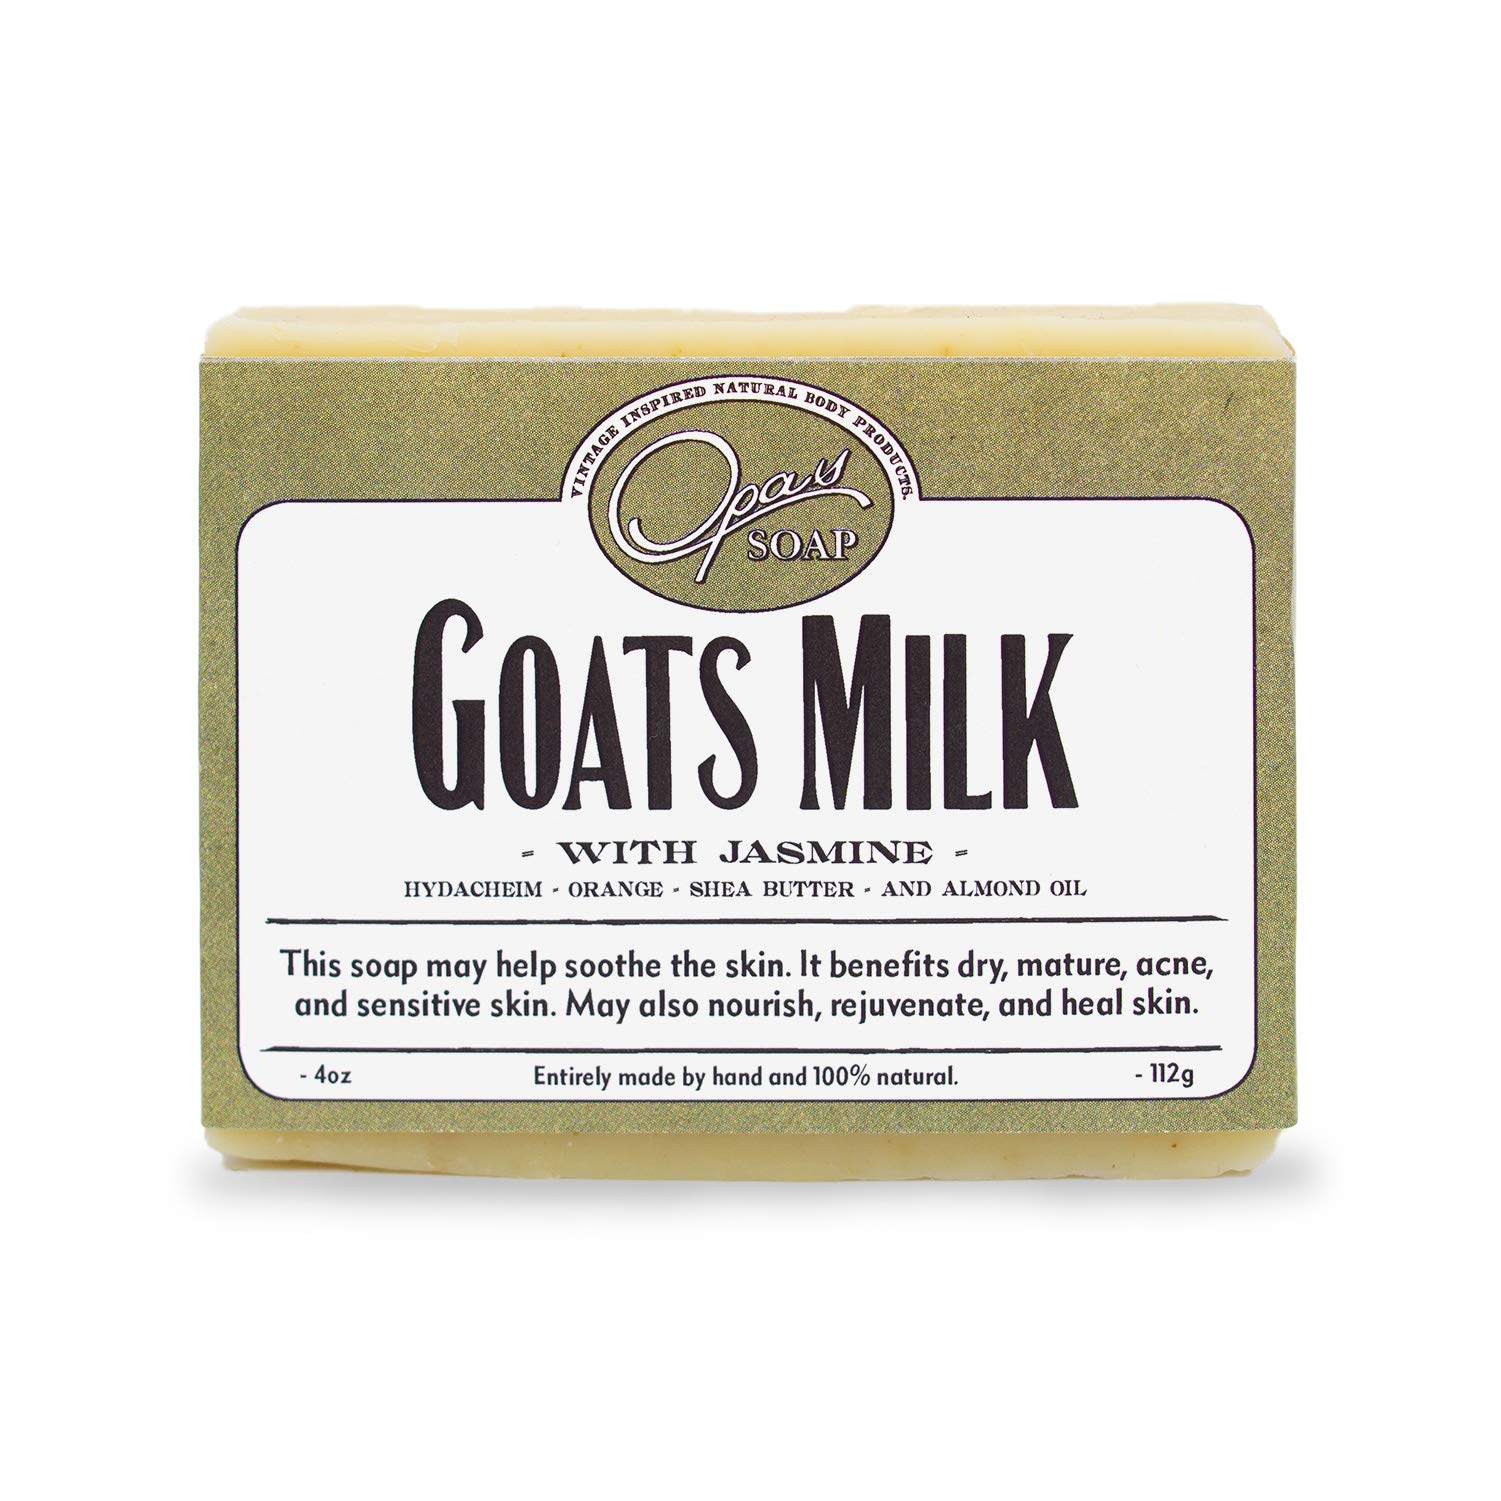 The Best Goats Milk Soap, 100% Natural, Carcinogen Free, Cold Processed, Organic Jojoba - Flowery Citrus Scent - Made with Natural Essential Oils of Jasmine and Mandarin